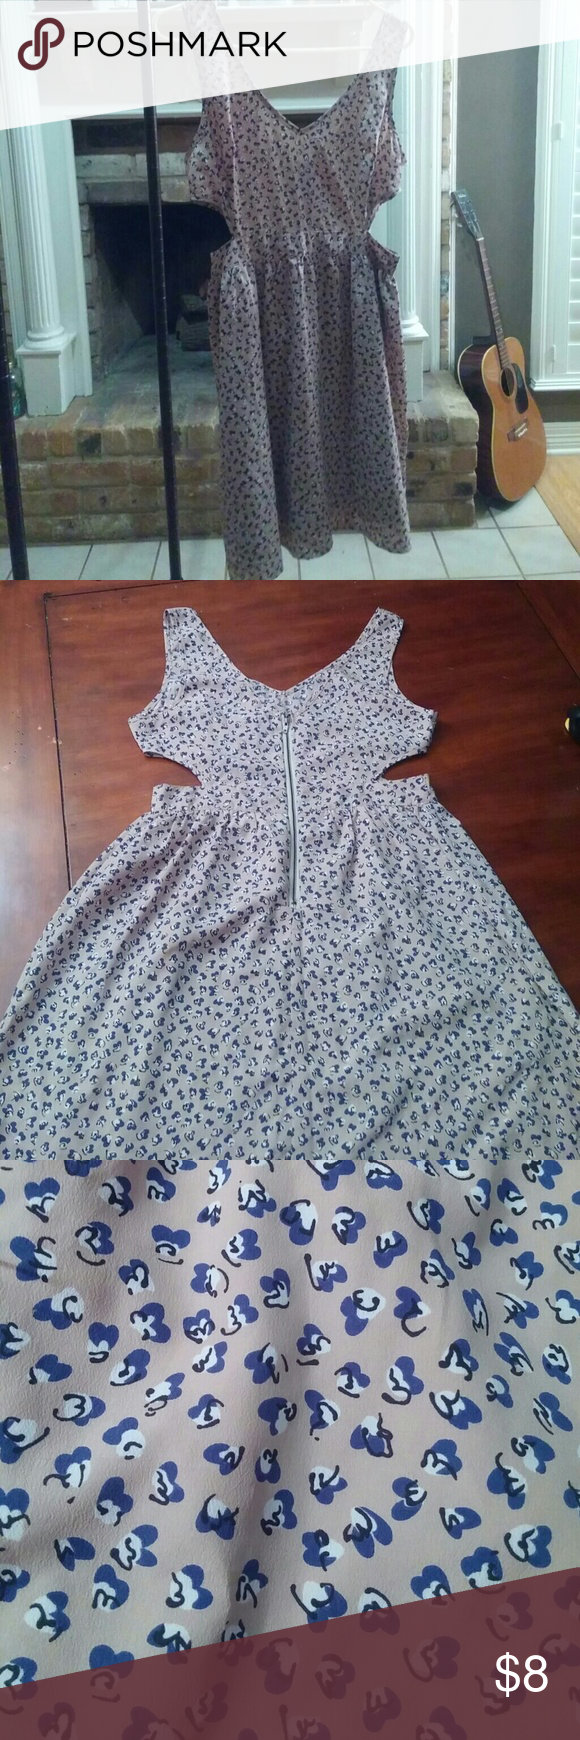 Super cute summer dress?? This summer dress is super cute with side cutt out zipper in the back would look cute with sandals or white vans even low cutt boots. Ya Los Angeles Dresses Mini